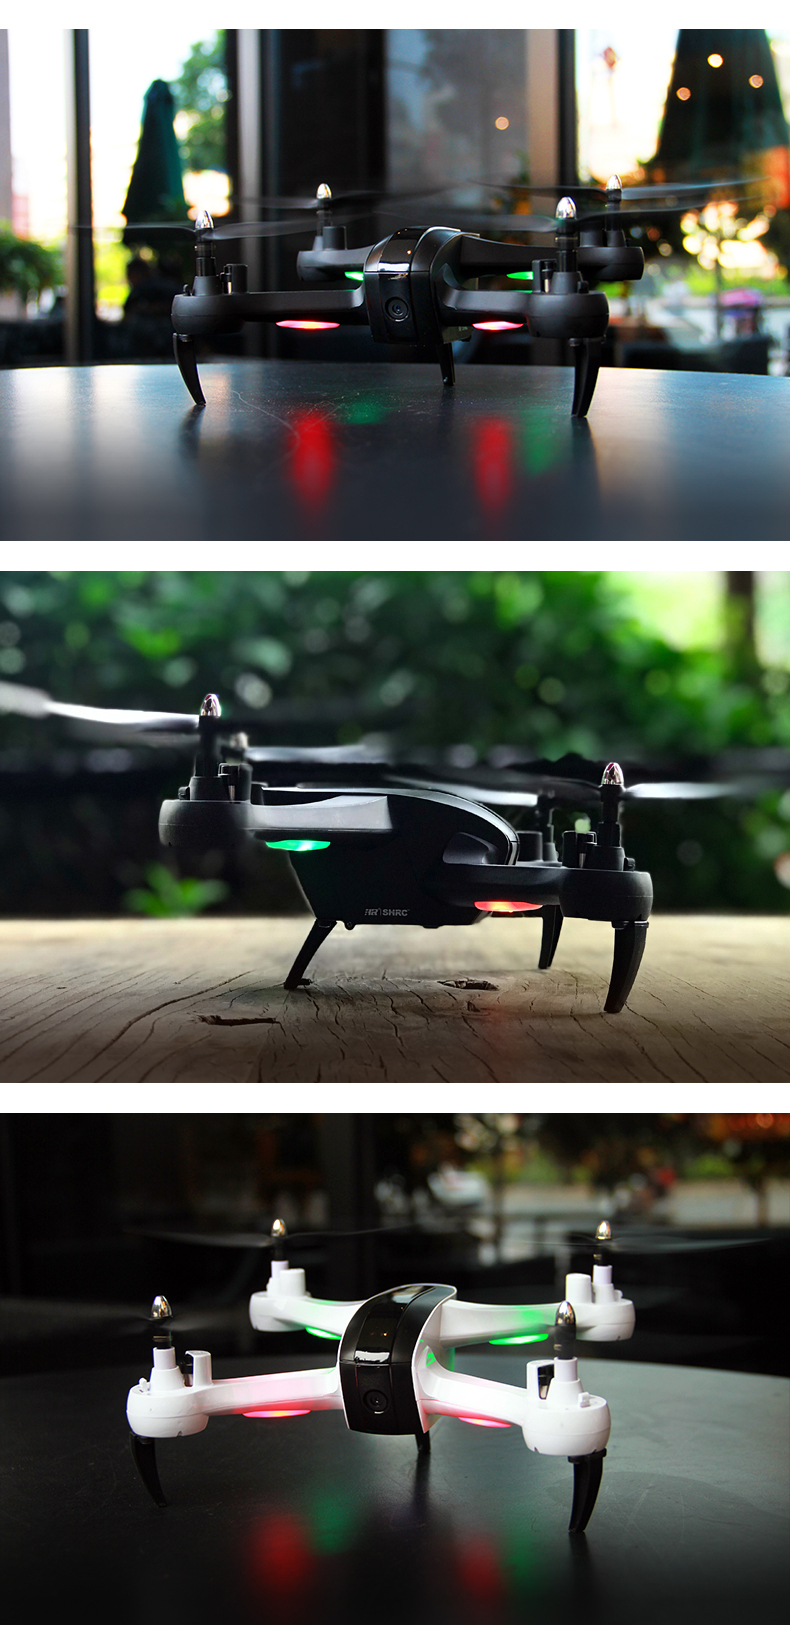 HR SH7 WIFI FPV With 1080P HD Camera 18mins Flight Time Altitude Hold Mode RC Drone Quadcopter RTF - Photo: 8